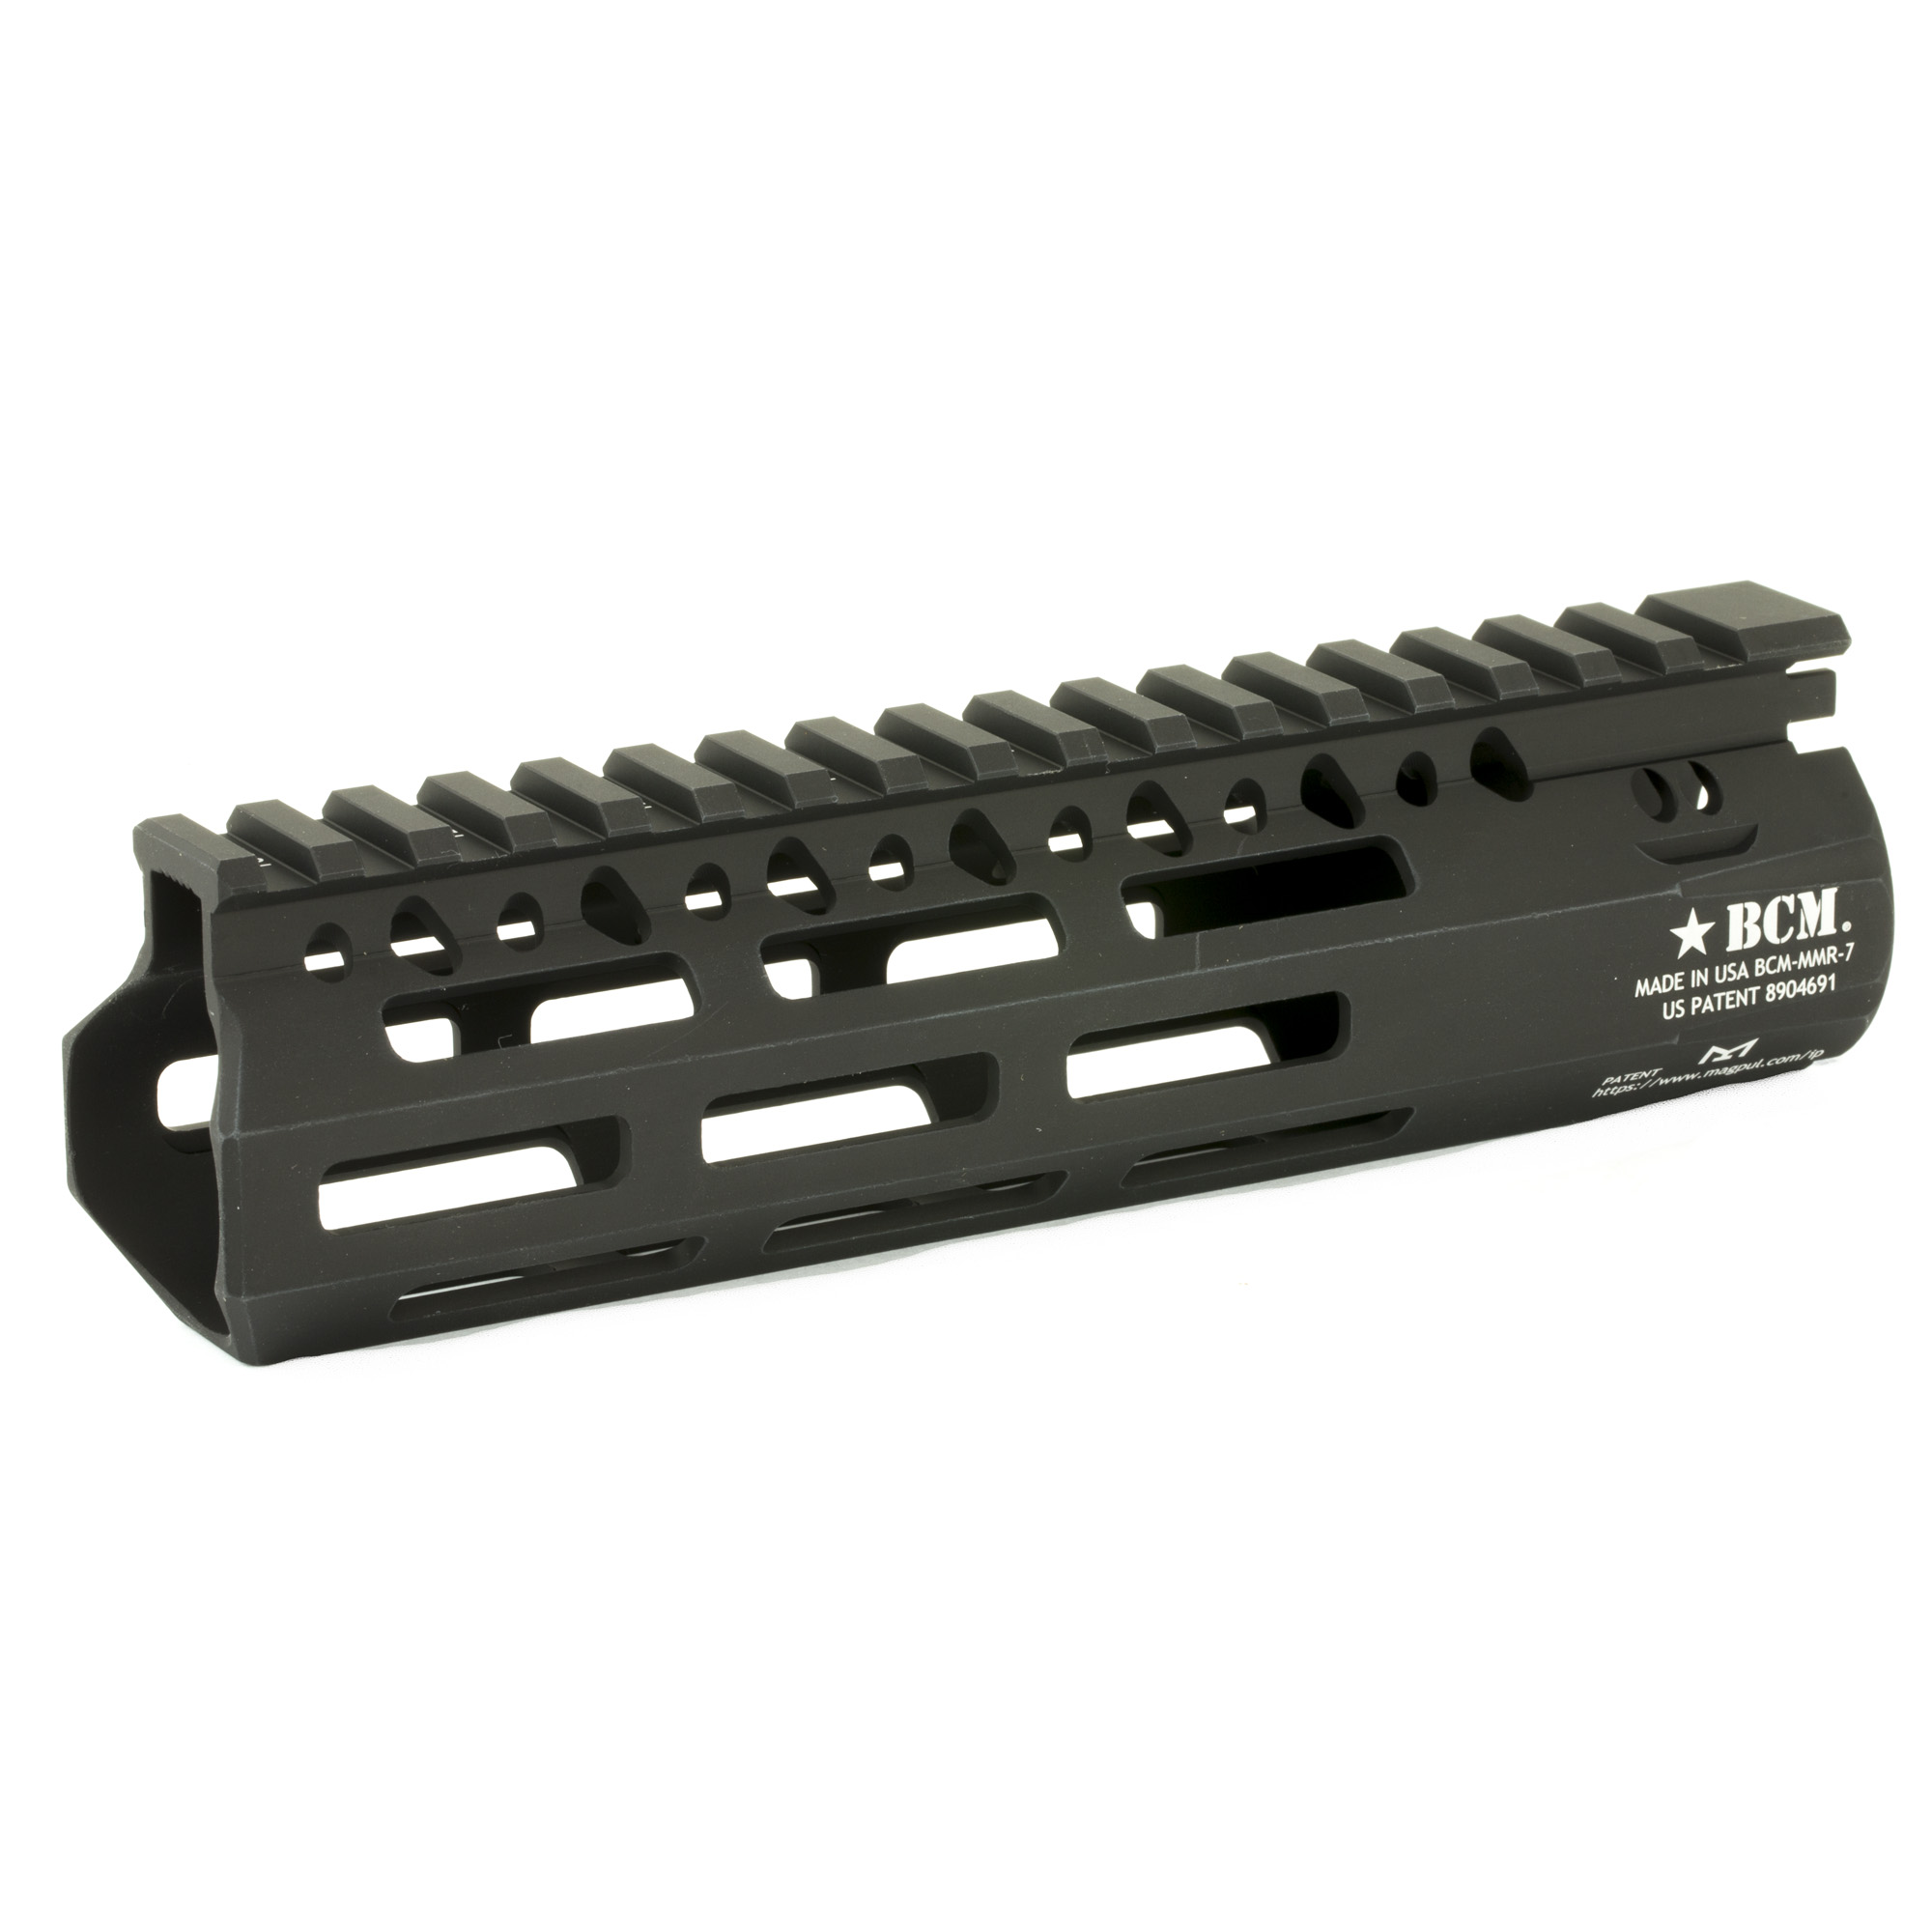 """Bravo Company's BCM MCMR-7 M-LOK Compatible Modular Rail features the same industry leading barrel nut and lock up design as originally introduced on BCM's evolutionary KMR handguard. The MCMR Series of handguards gives the shooter modularity in the M-LOK(R) platform. This proprietary patented mounting system (US Patent 8904691)"""" includes a mechanical index to the 12:00 rail and positions mounting hardware to mitigate the movement caused by heat generated by the weapon system. It is made from Precision Machined Aerospace 6061-T6 Aluminum Alloy"""" for high strength and is lightweight. The proprietary engineered profile offers additional cross sectional strength. The actual length when measured to flare is 7.39"""" and is designed to be used with a carbine length"""" mid length or rifle length gas system with a FSB or a pistol length gas system with a low profile gas block. This Free Float Handguard eliminates loads from barrel"""" reducing the deflection for more accurate shooting."""